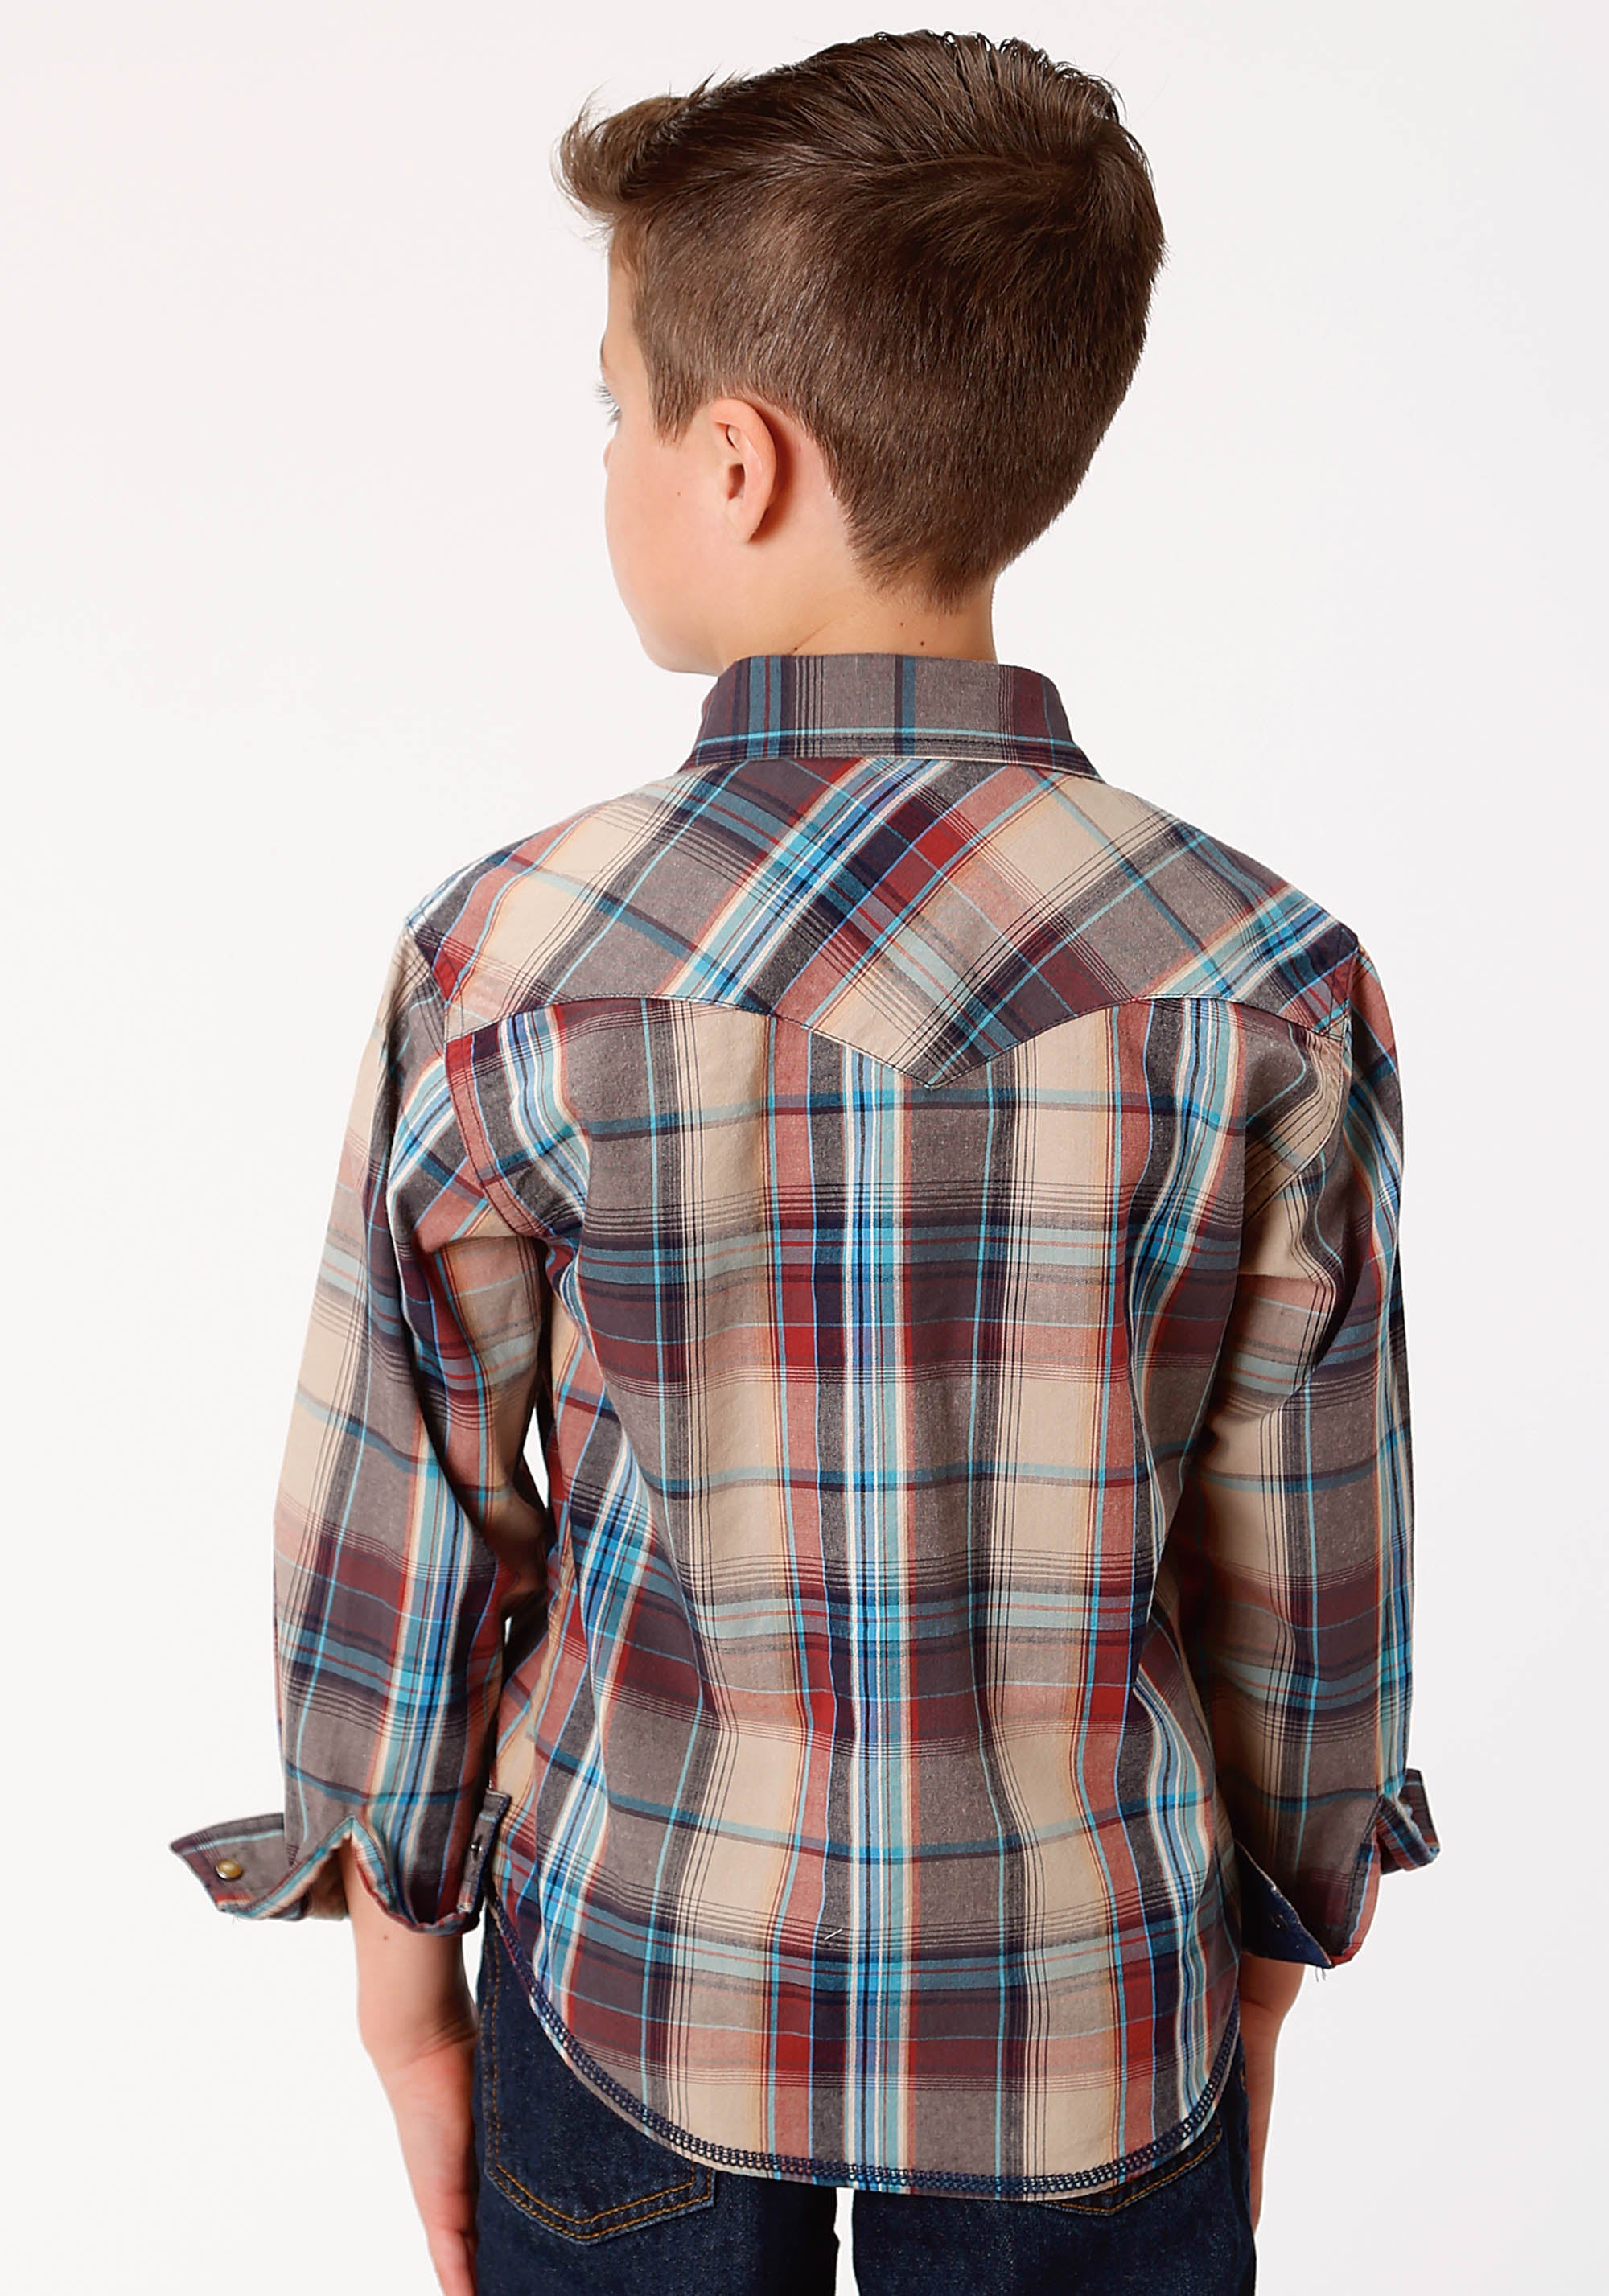 ROPER BOYS BROWN 0738 DUSK PLAID WEST MADE COLLECTION LONG SLEEVE